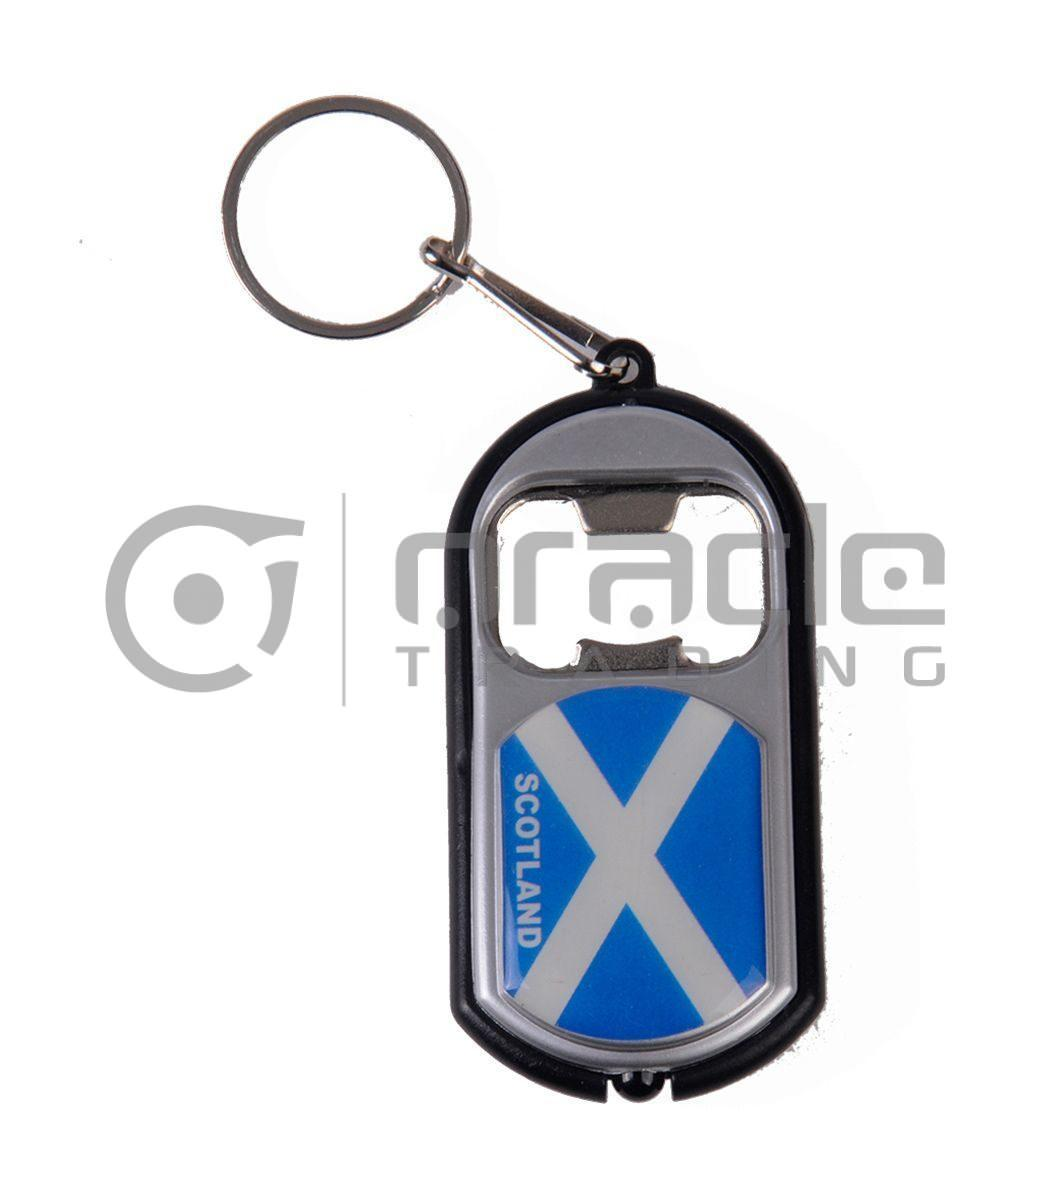 Scotland Flashlight Bottle Opener Keychain 12-Pack